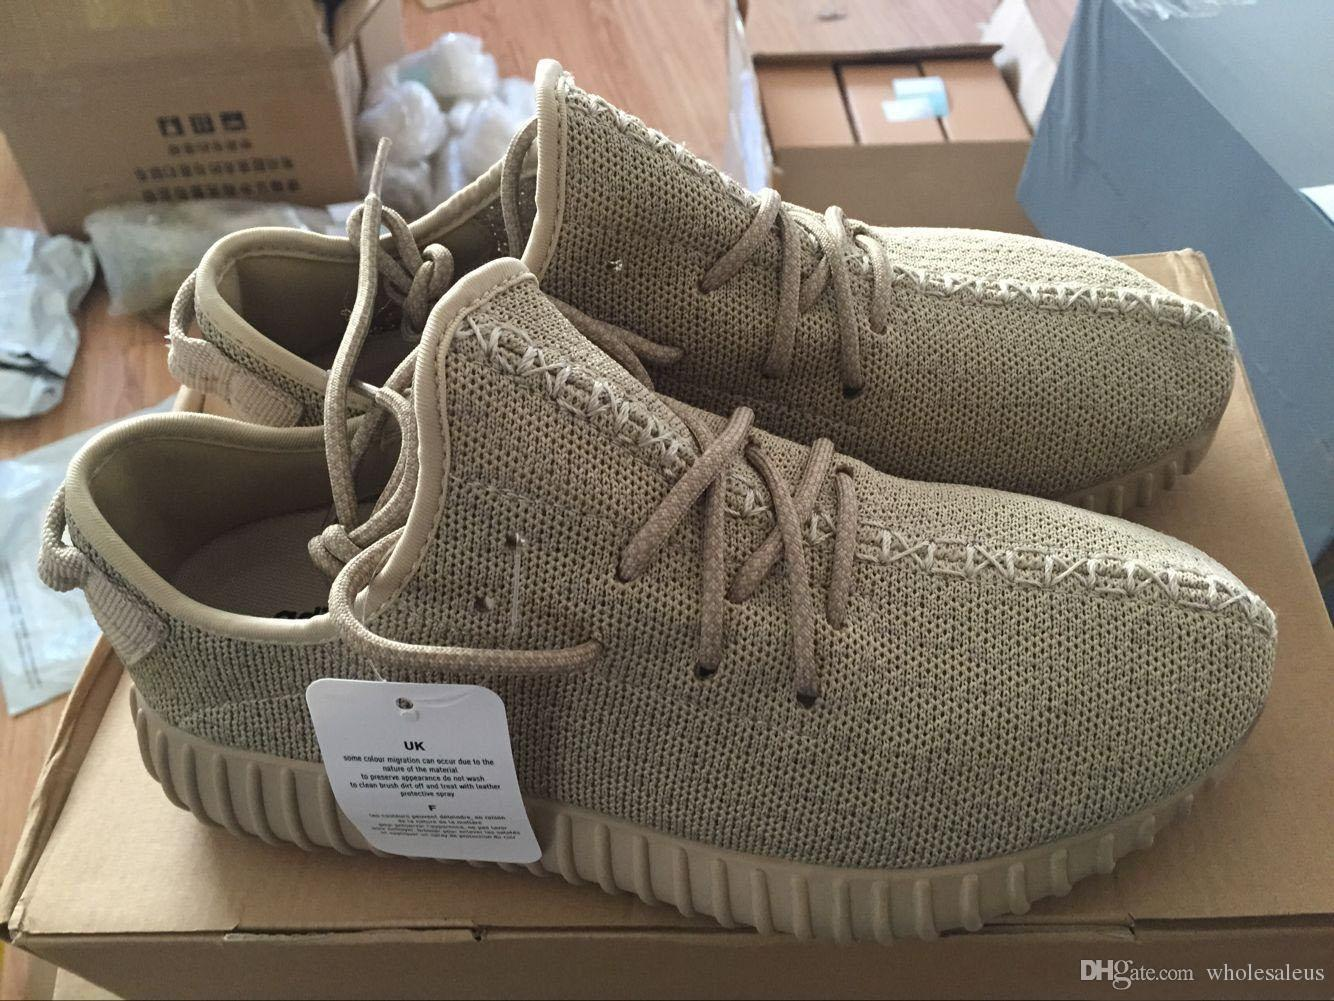 With Box Oxford Tan Yeezy Boost 350 Moonrock Turtle Dove ...